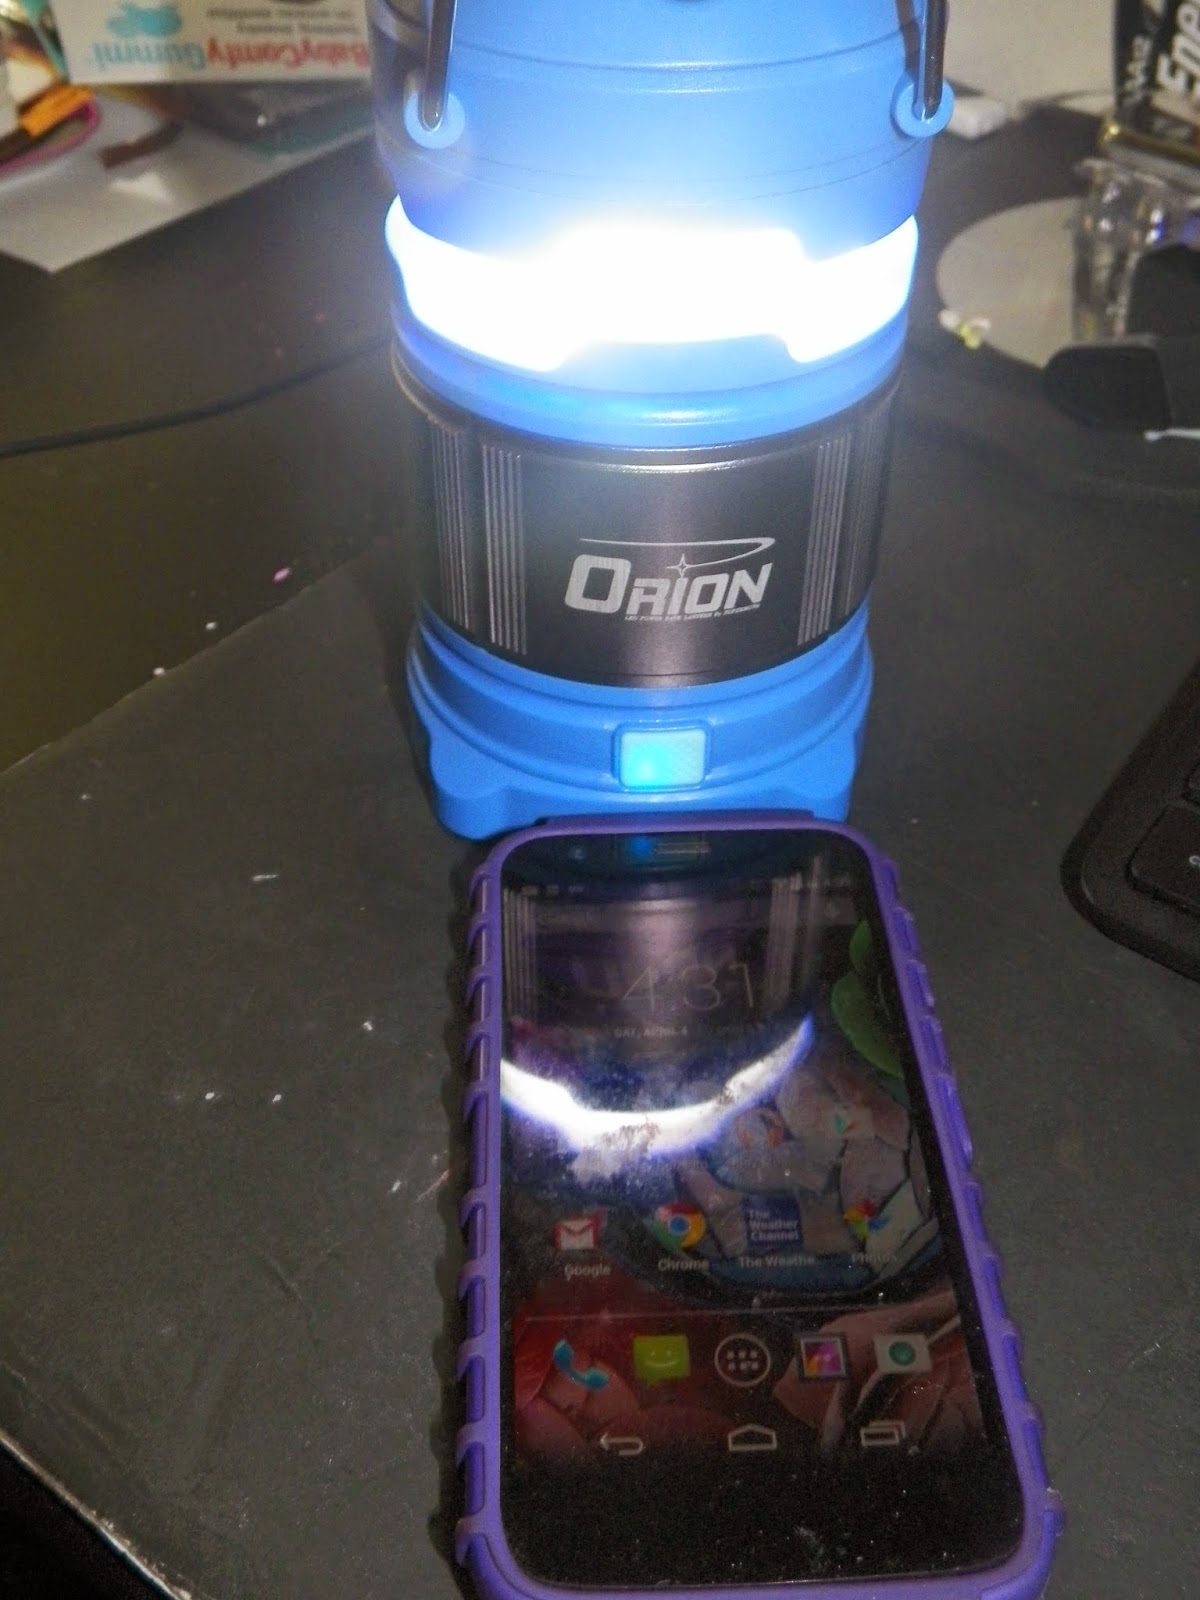 Orion_Rechargeable_LED_Lantern_and_PowerBank.jpg